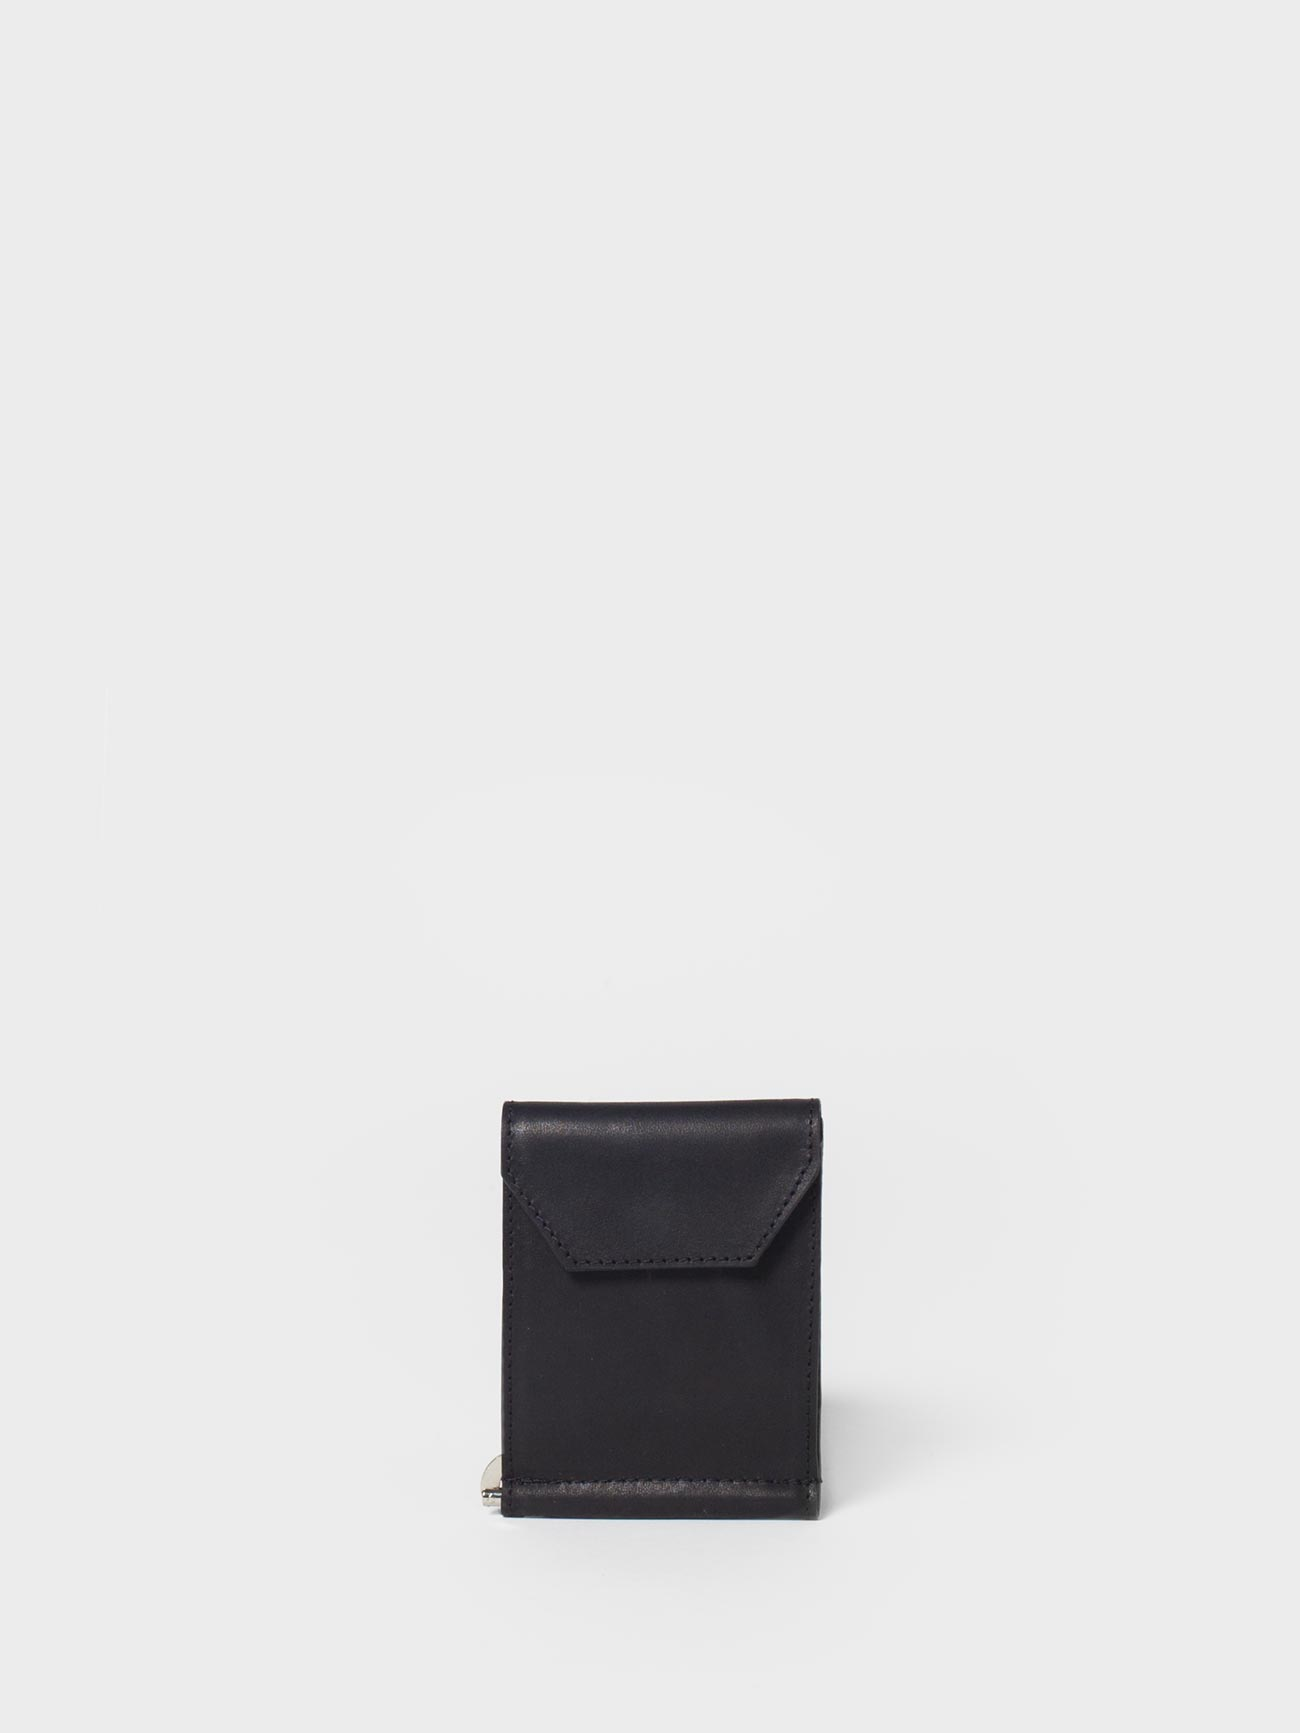 PARK Wallet WL02 Black